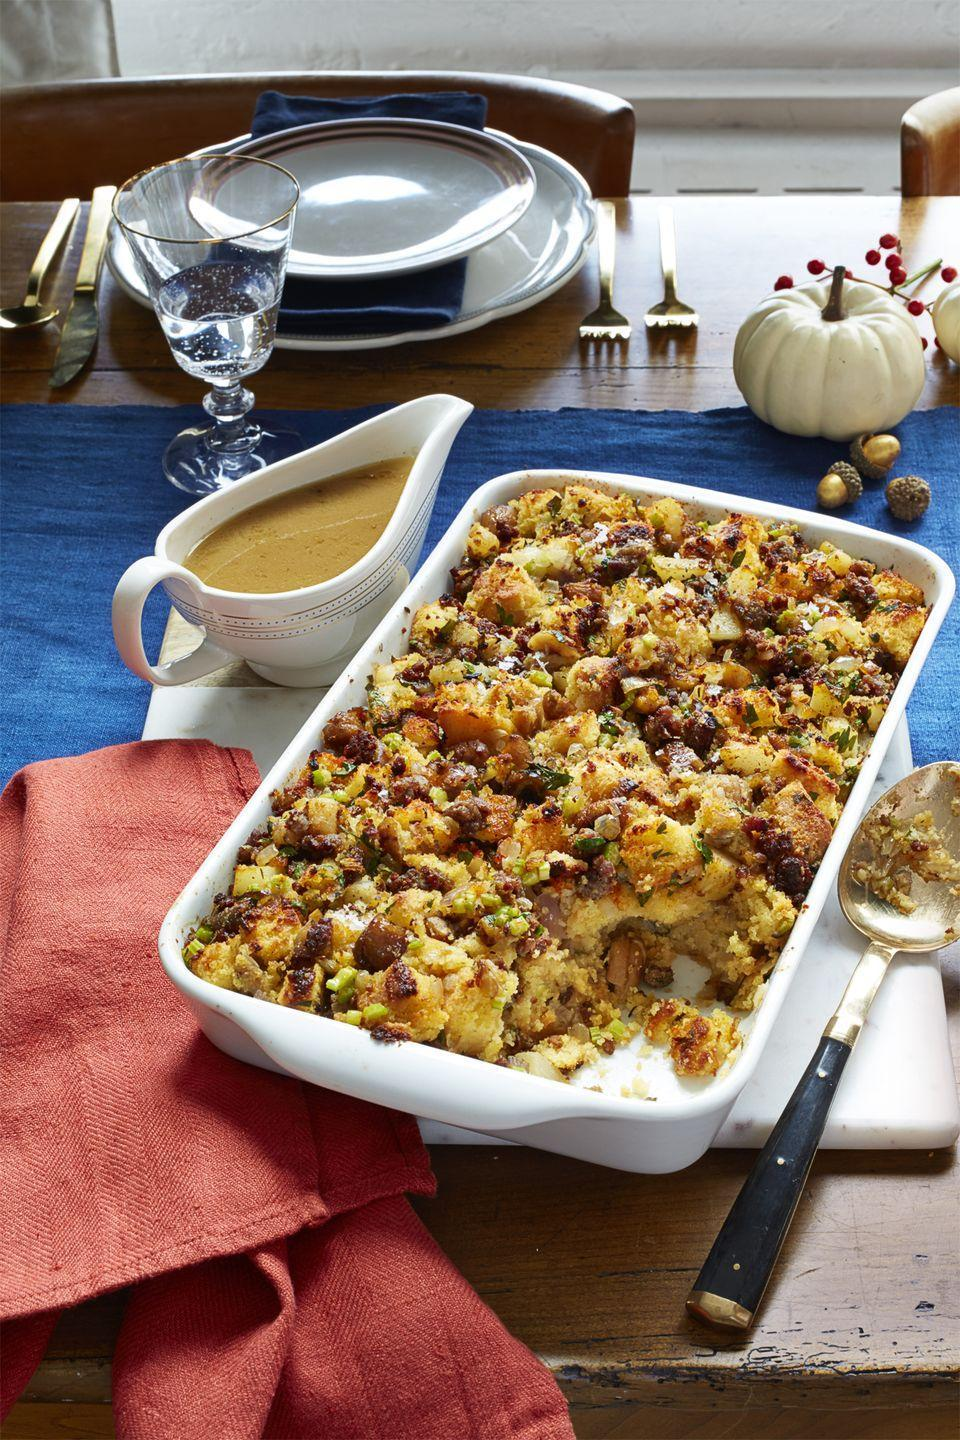 """<p>Serve up a sophisticated, Southern side dish this Thanksgiving with this flavorful stuffing.<br></p><p><em><a href=""""https://www.womansday.com/food-recipes/food-drinks/recipes/a56465/cornbread-sausage-and-chestnut-stuffing-recipe/"""" rel=""""nofollow noopener"""" target=""""_blank"""" data-ylk=""""slk:Get the Cornbread, Sausage, and Chestnut Stuffing recipe."""" class=""""link rapid-noclick-resp""""><strong>Get the Cornbread, Sausage, and Chestnut Stuffing recipe.</strong></a> </em></p>"""